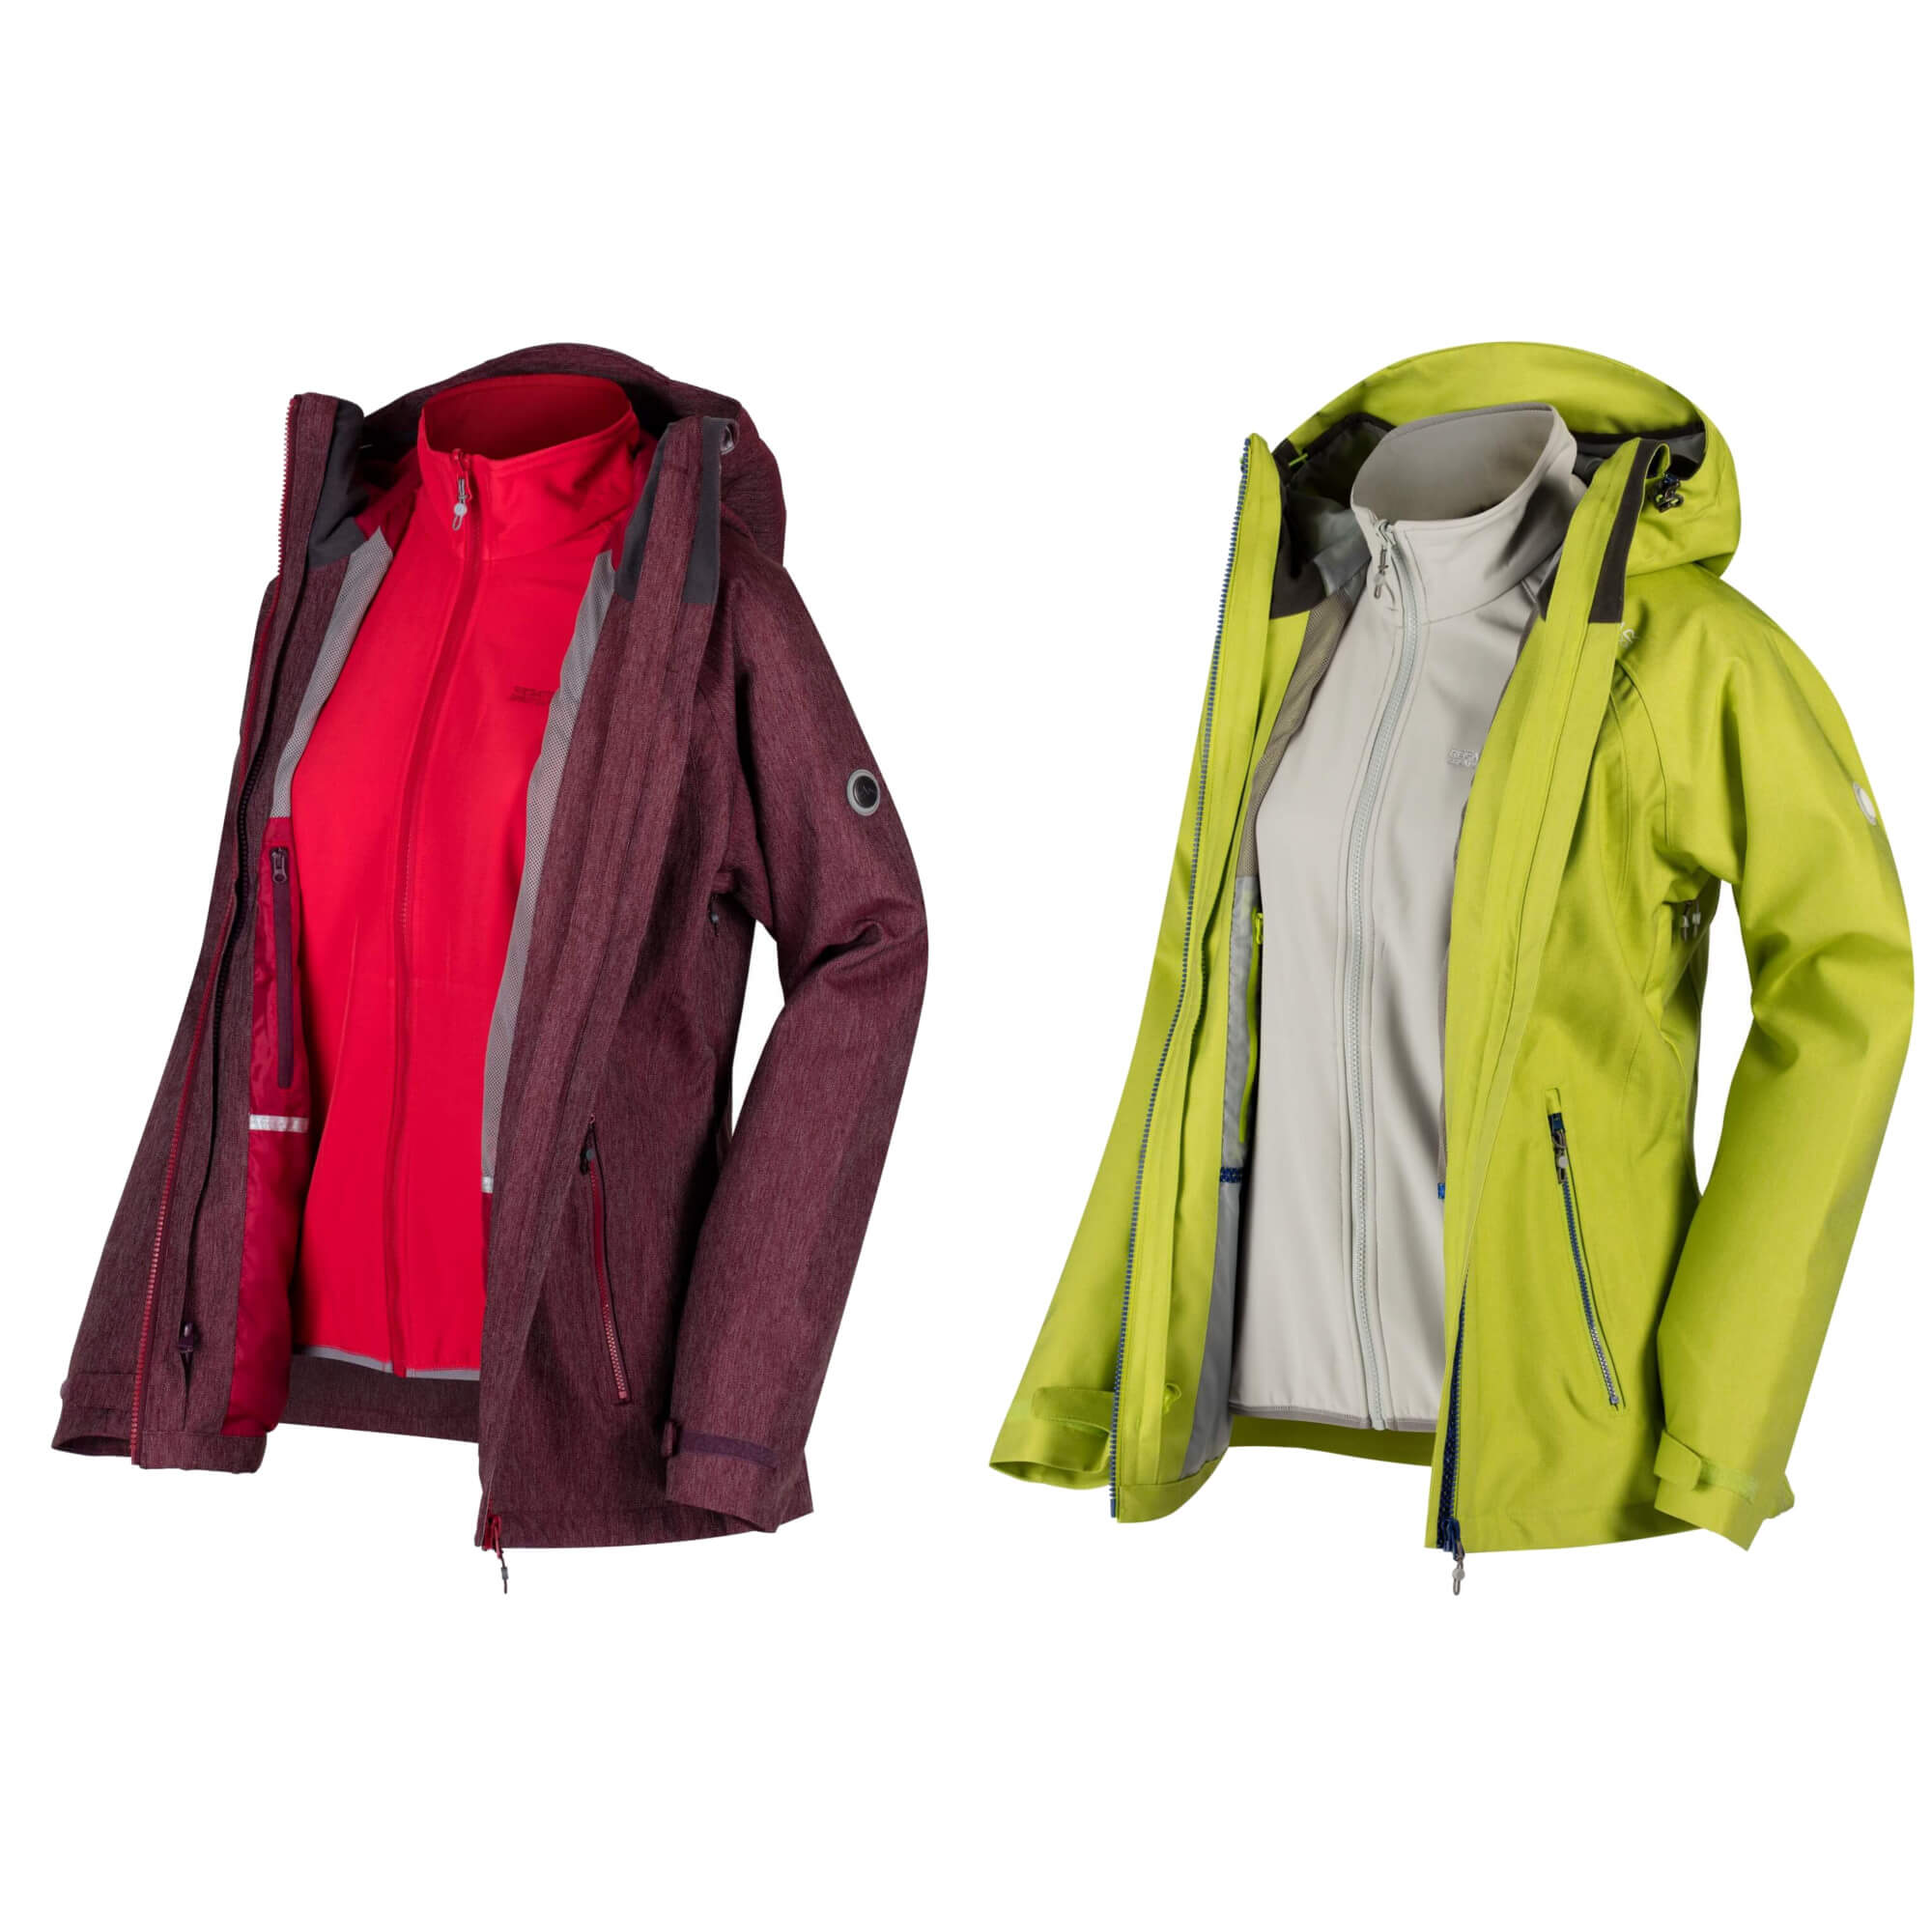 Regatta damenjacke 3 in 1